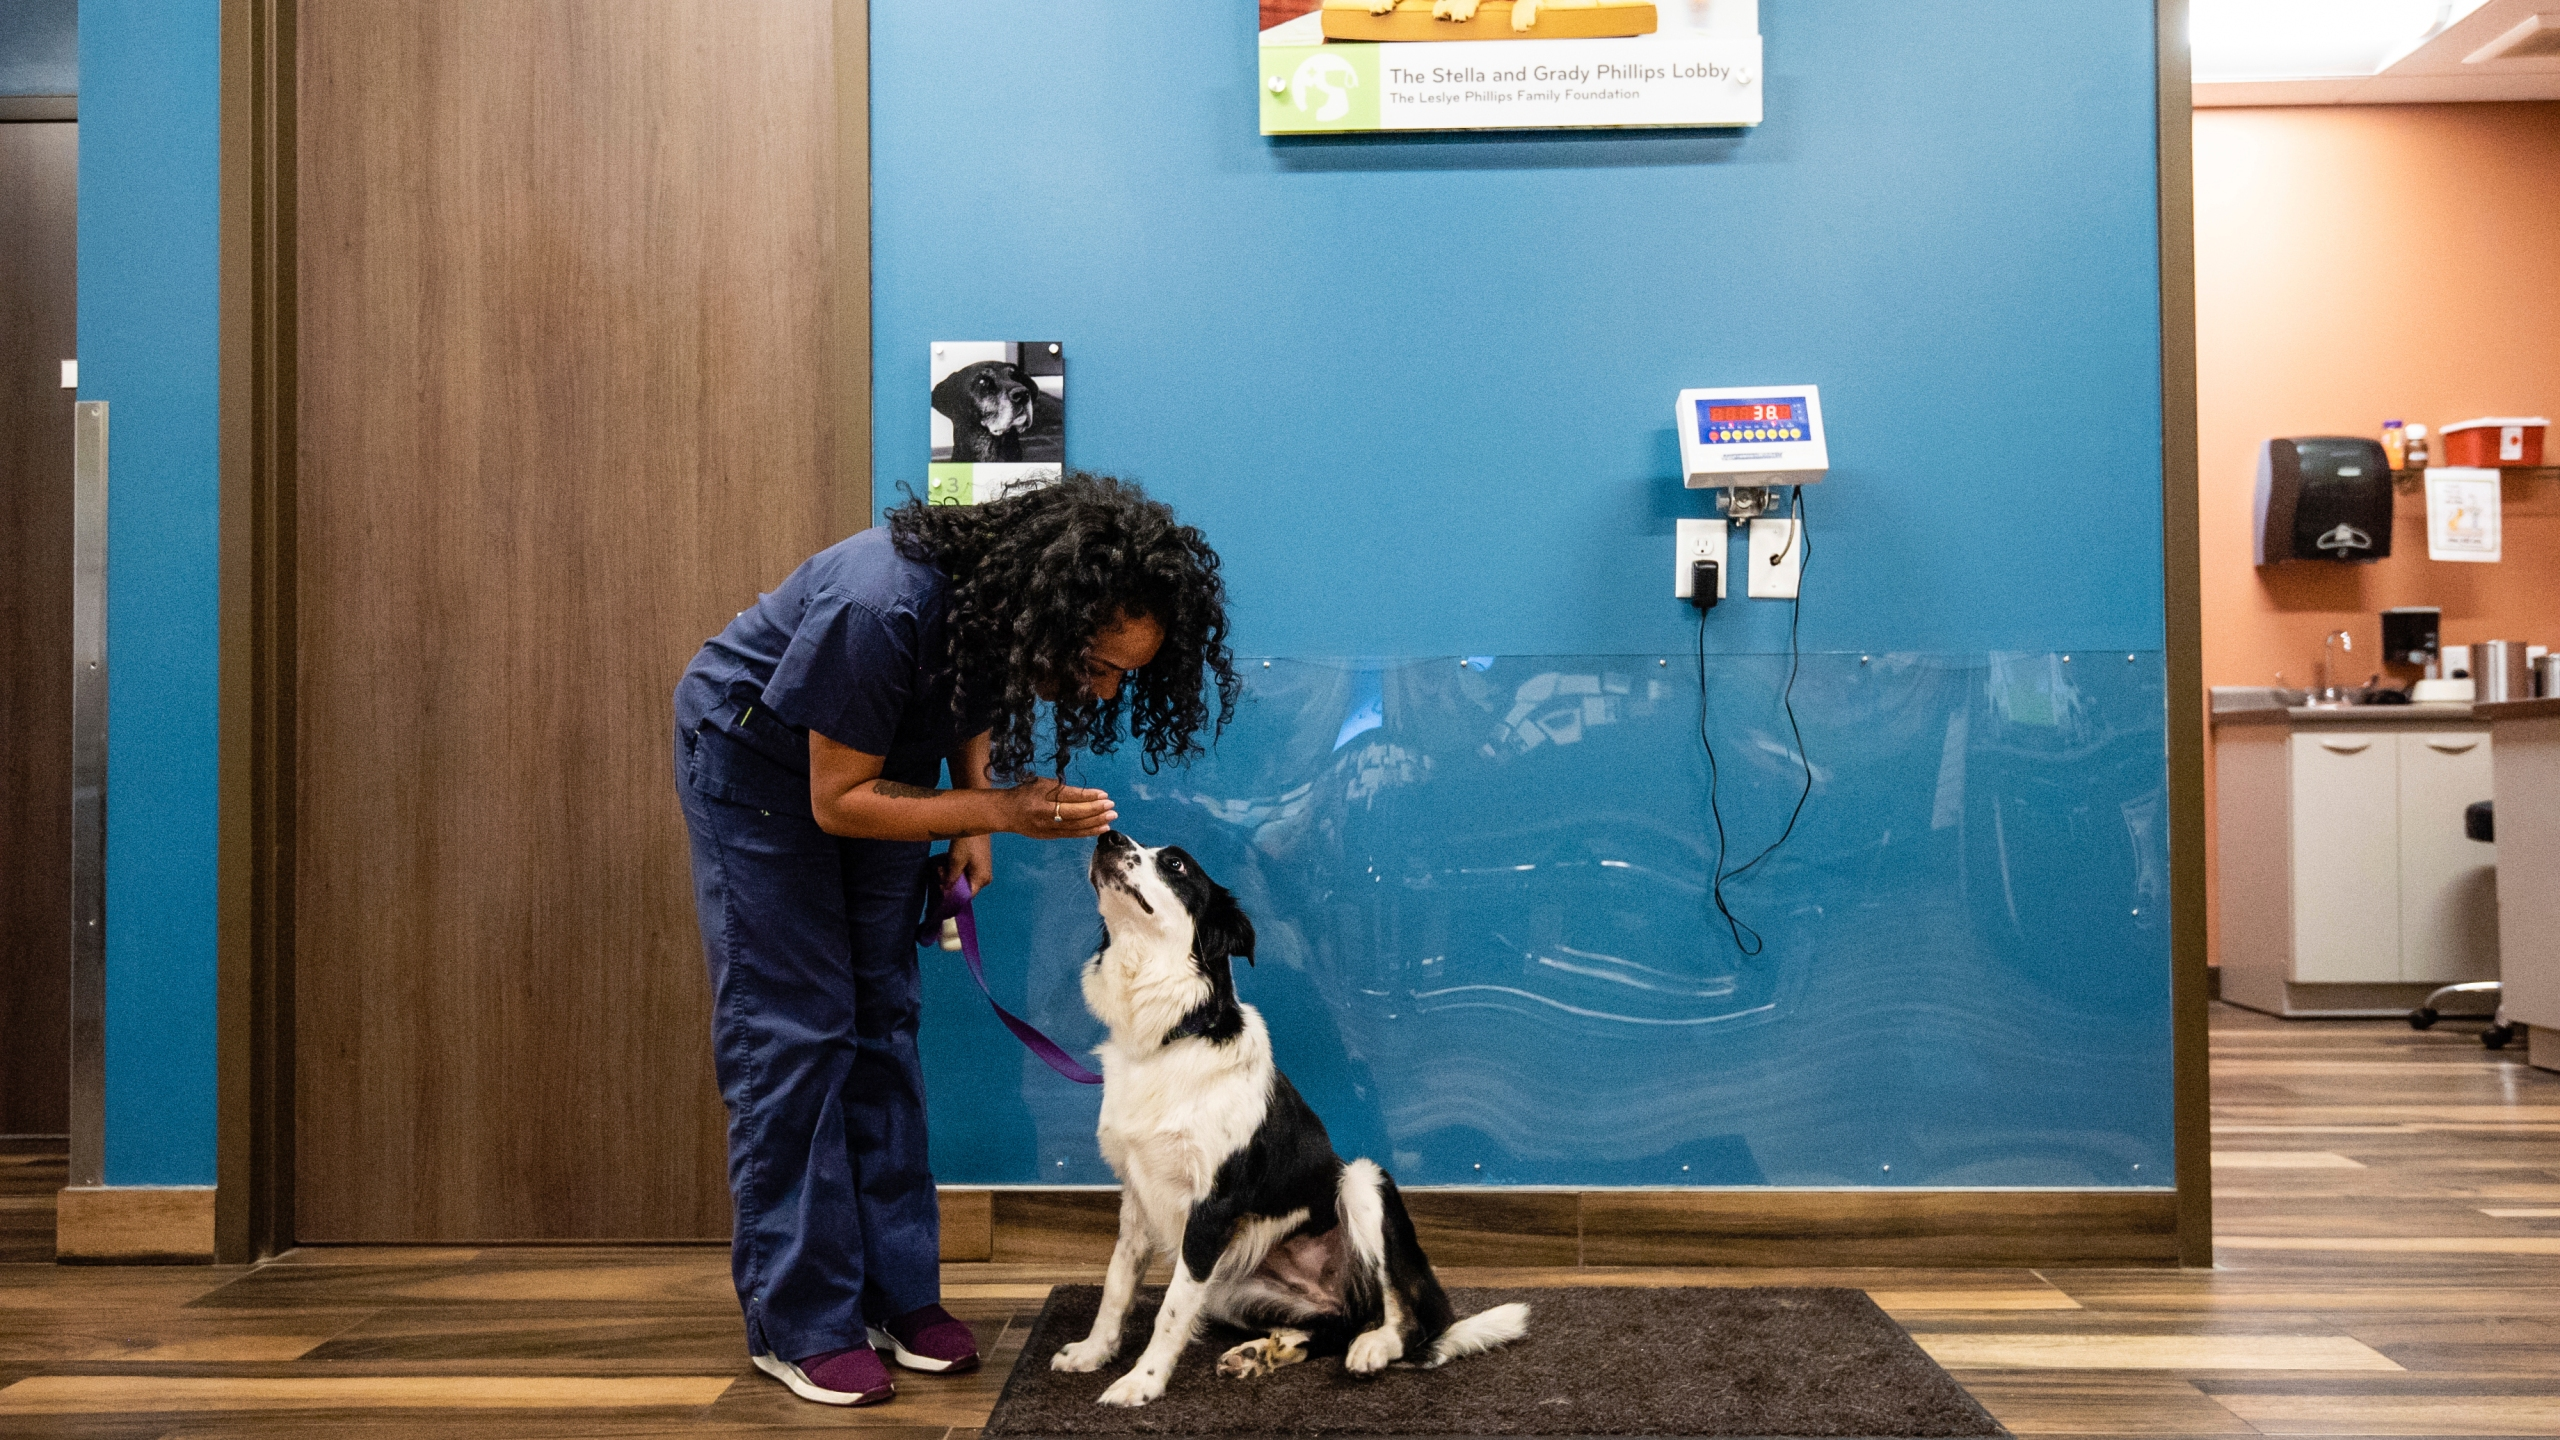 This undated photo shows a dog being weighed at Mission Animal Hospital in Eden Prairie, Minn., which provides subsidized care to low income pet owners. (Kirsten Eitreim/Mission Animal Hospital via AP)